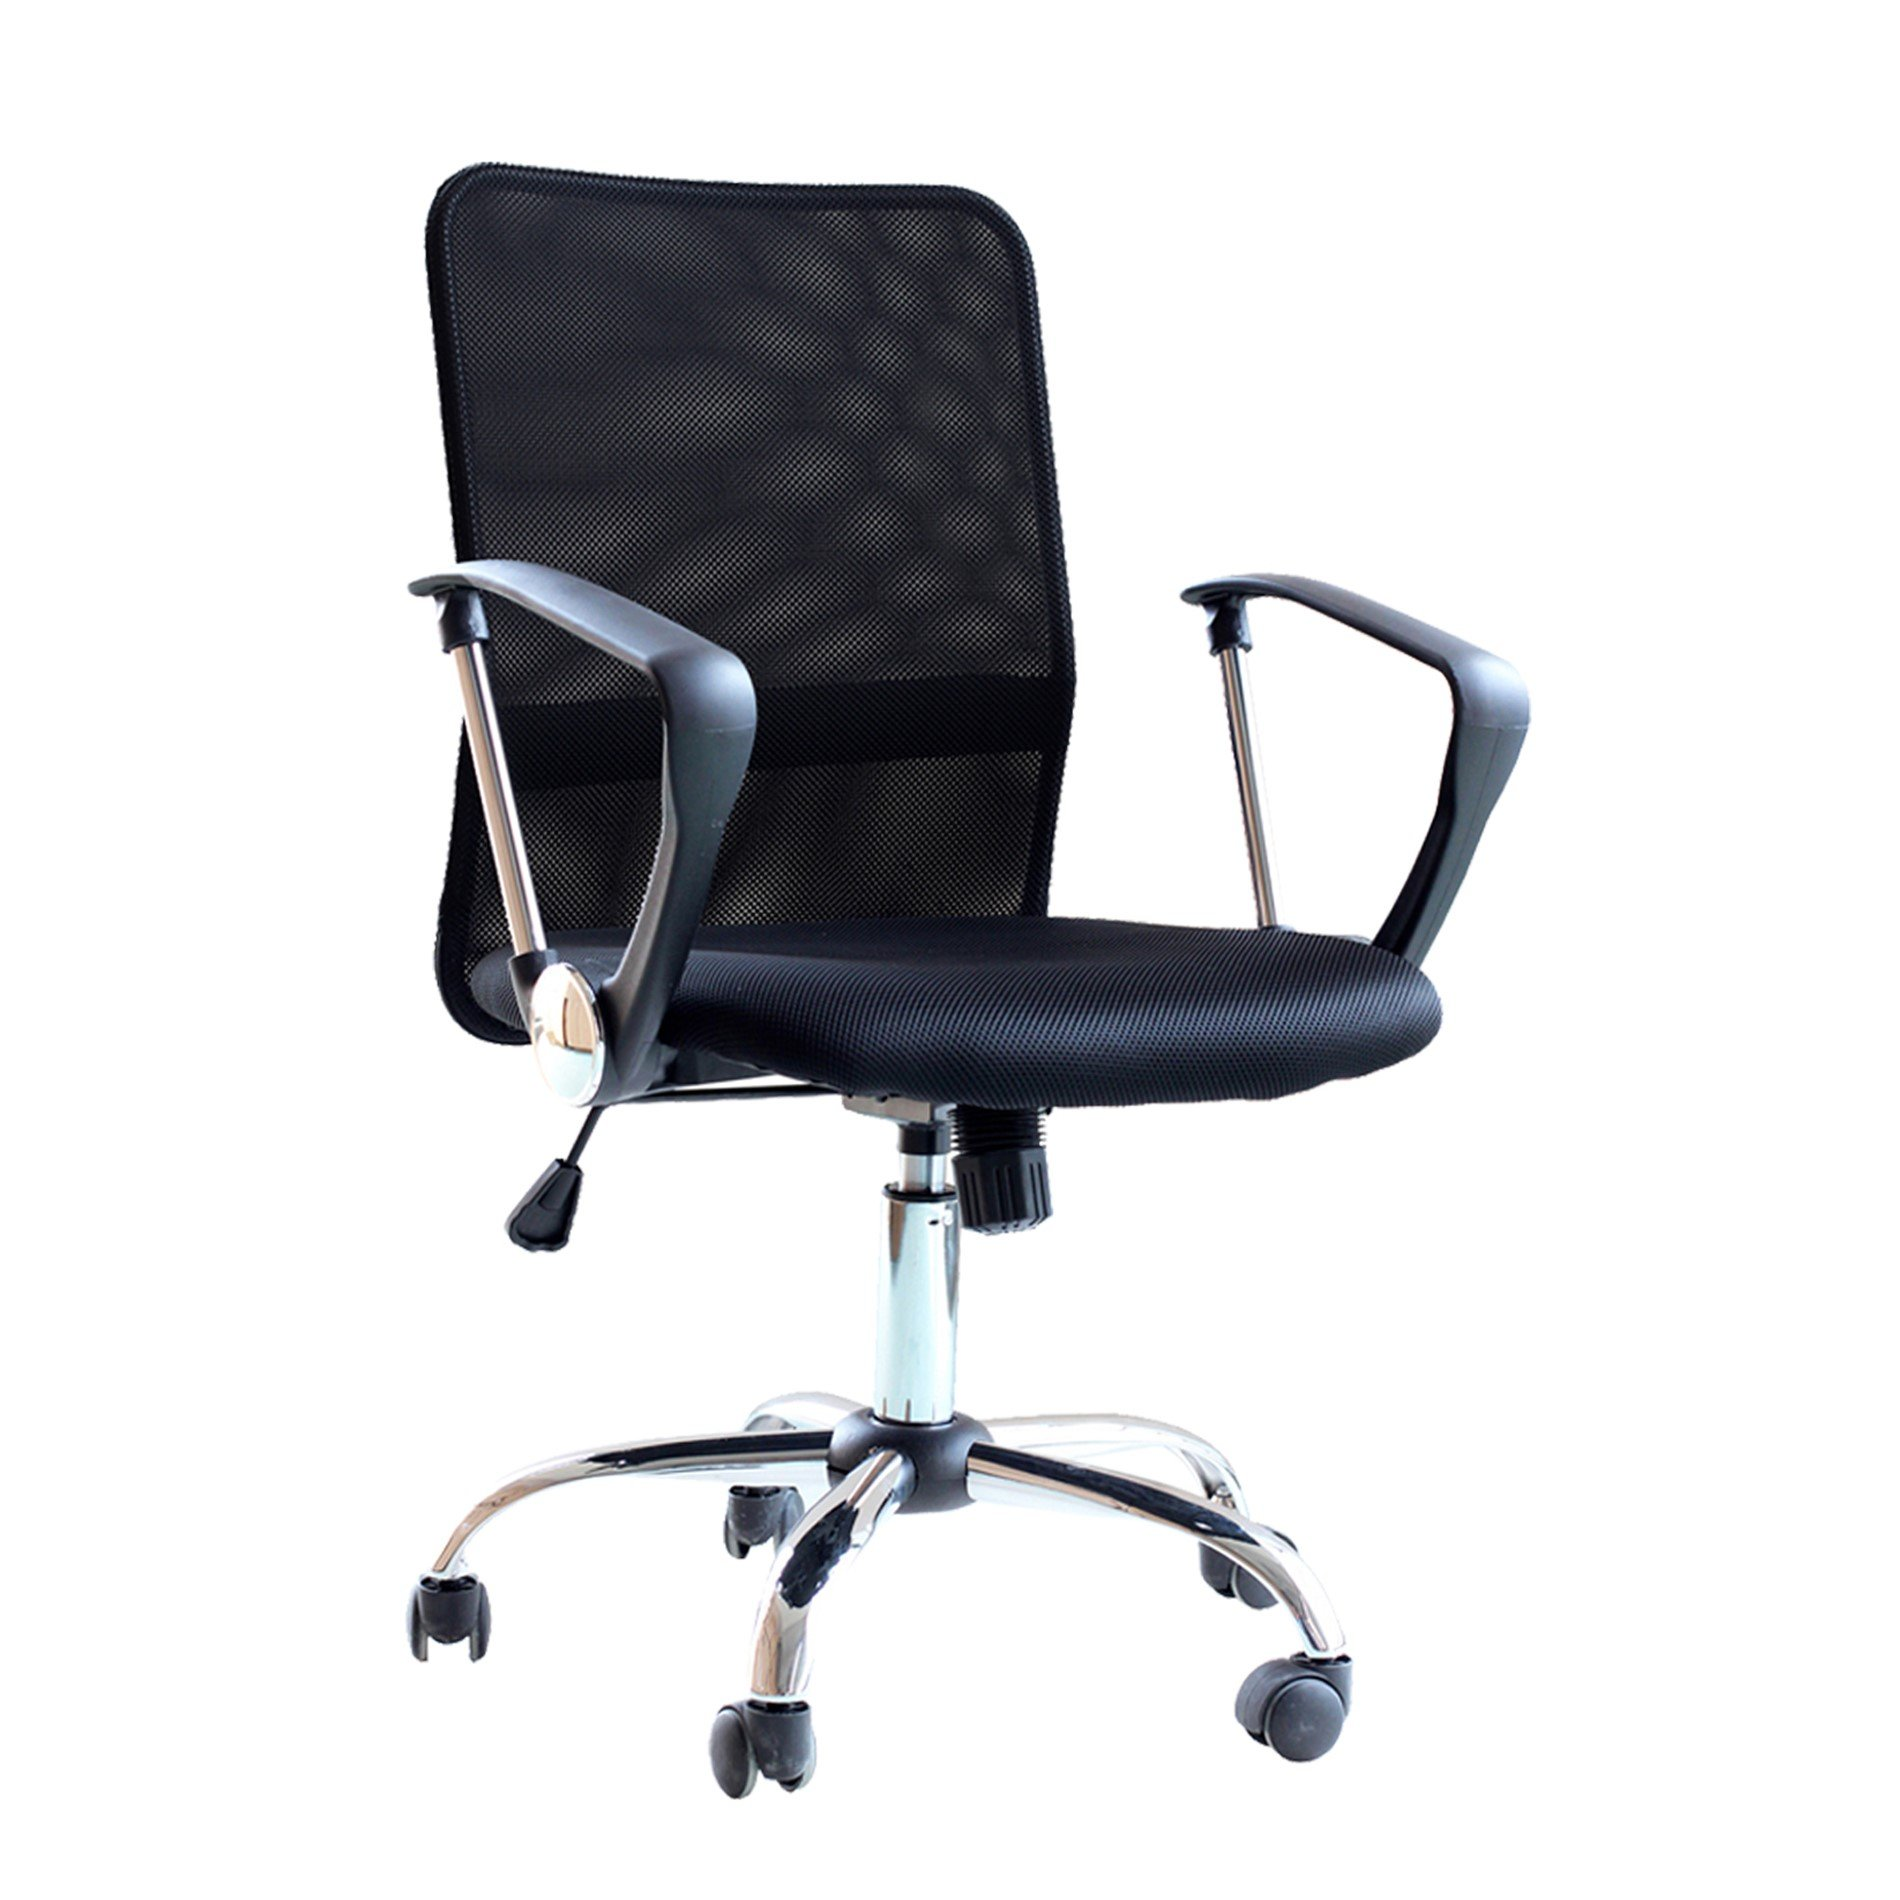 IDS Online IDS-18509 Mid Back Office Chair Ergonomic and Comfortable Home Desk Swivel Breathable and Durable Mesh Adjustable and Stylish Computer